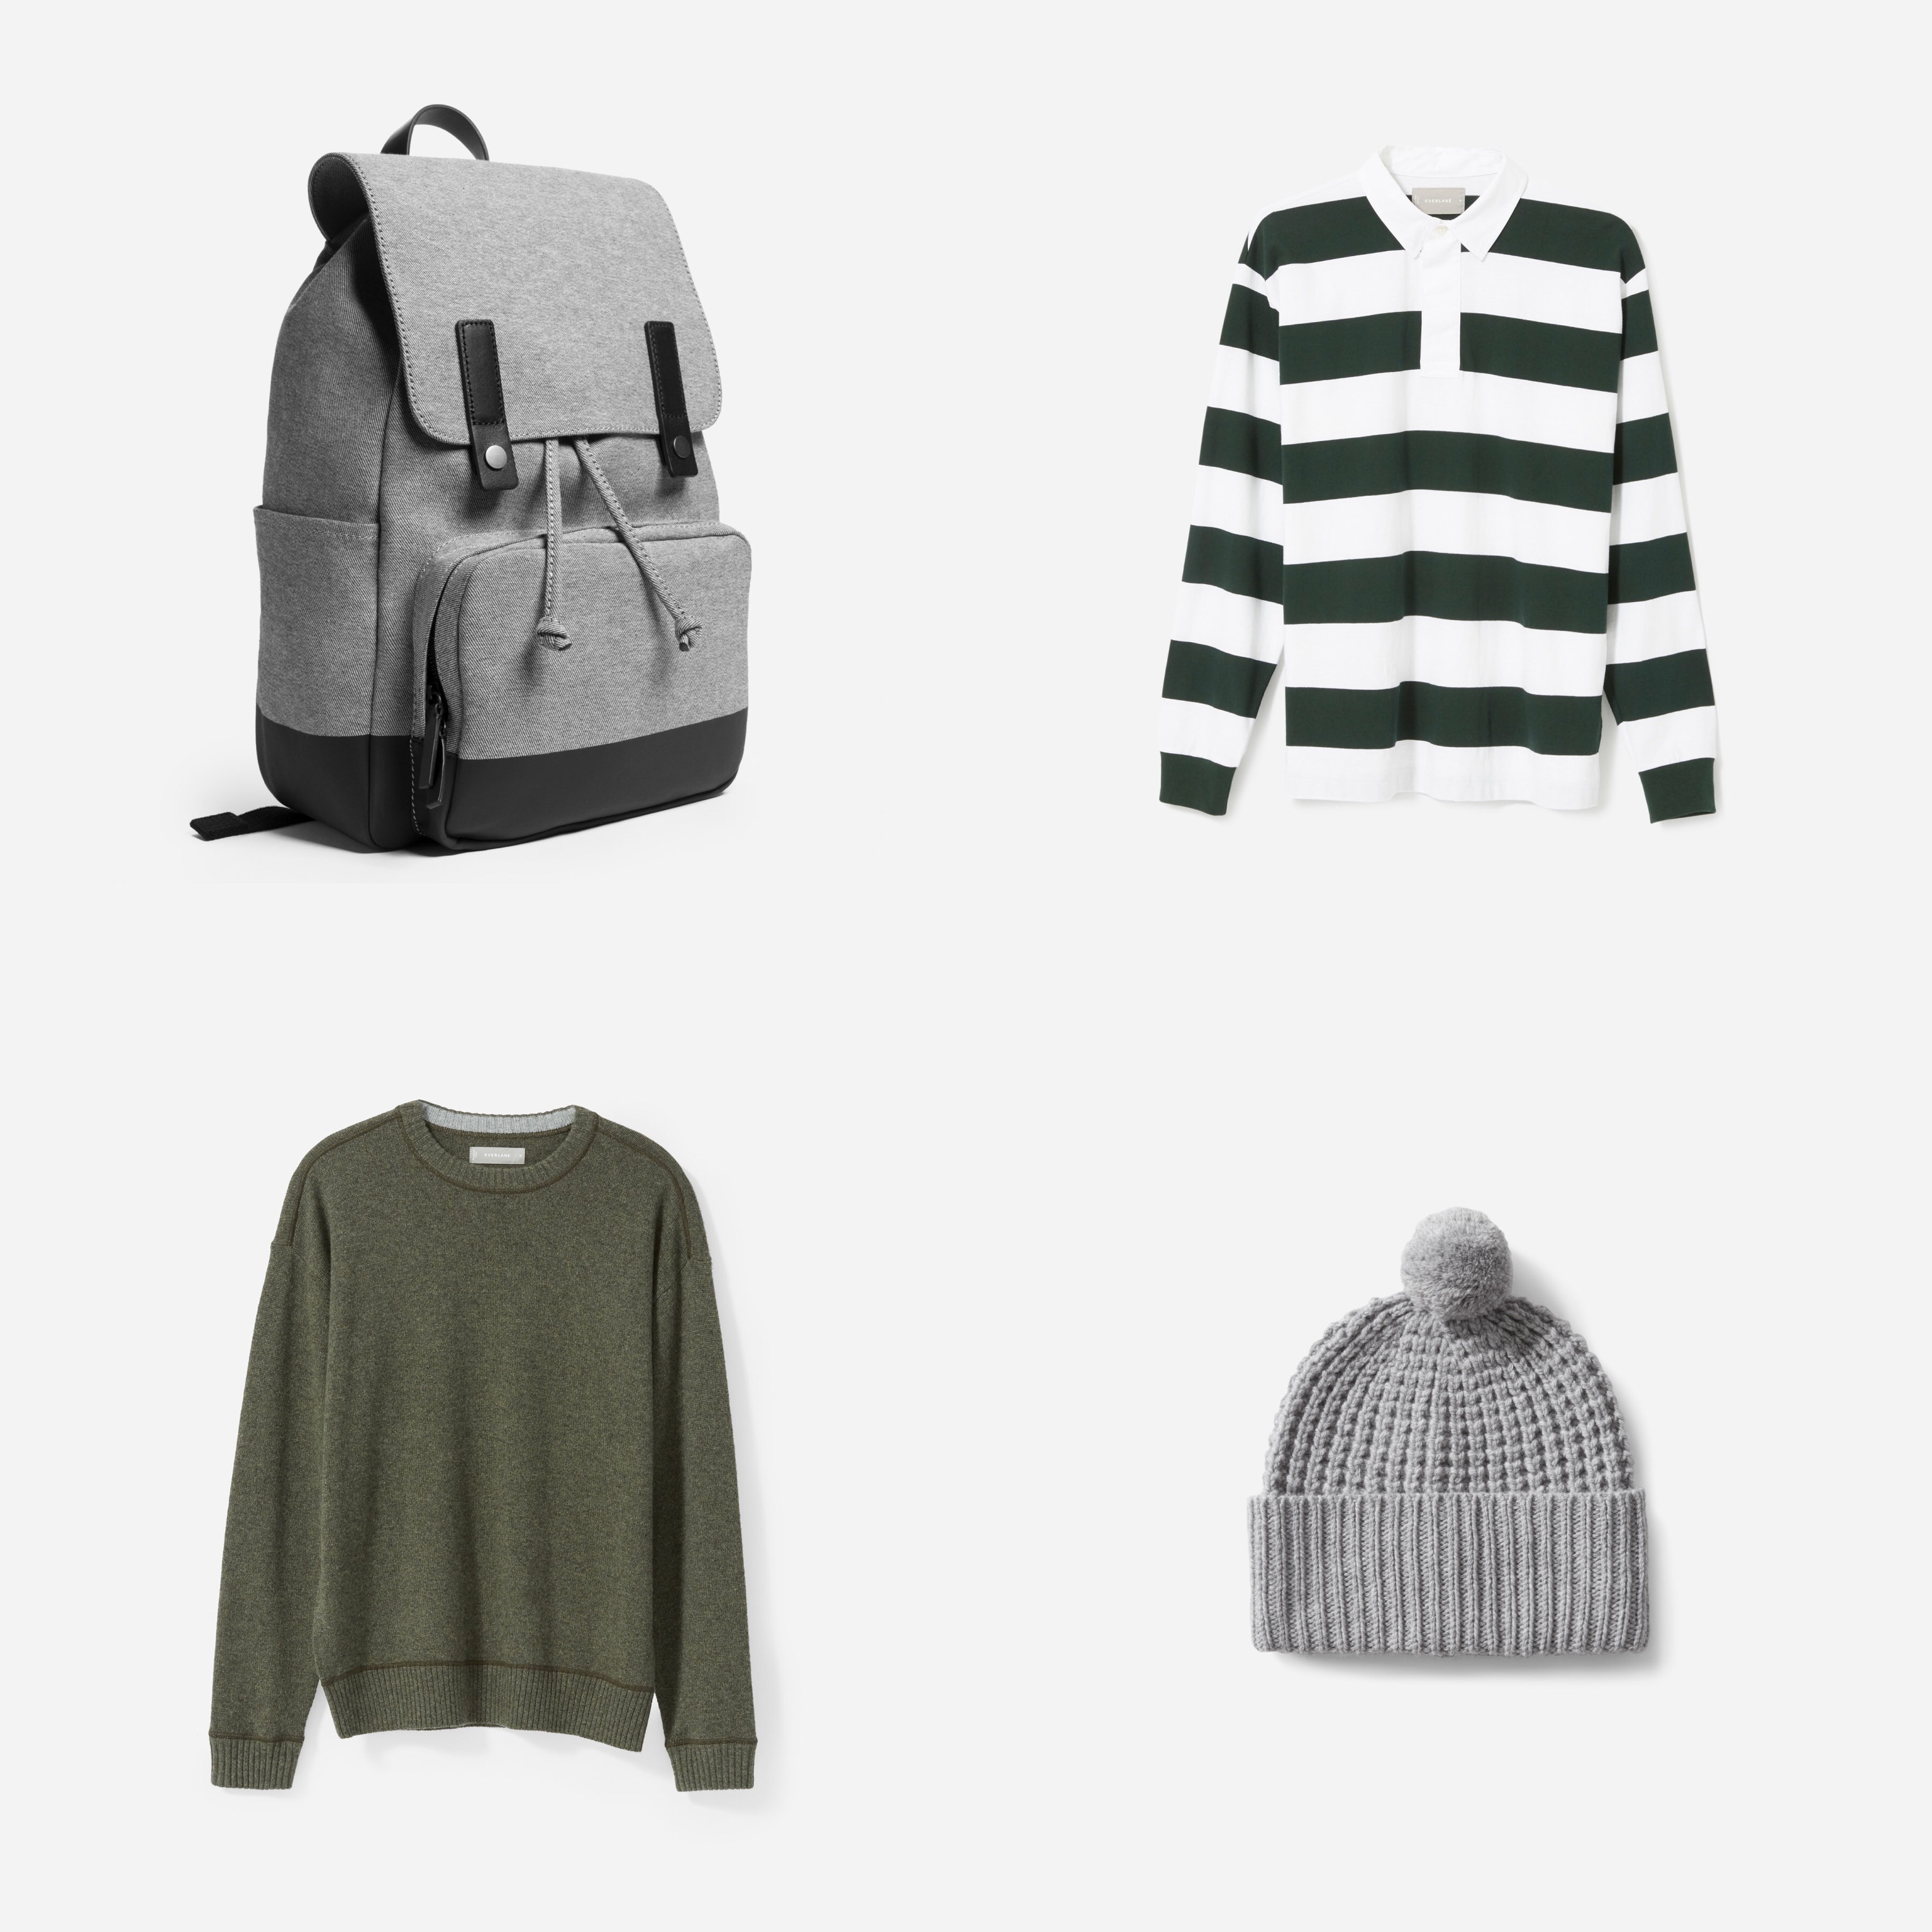 Holiday gift ideas for men 2018 – Meaningful stylish gifts for him. Cashmere sweaters sustainable sneakers